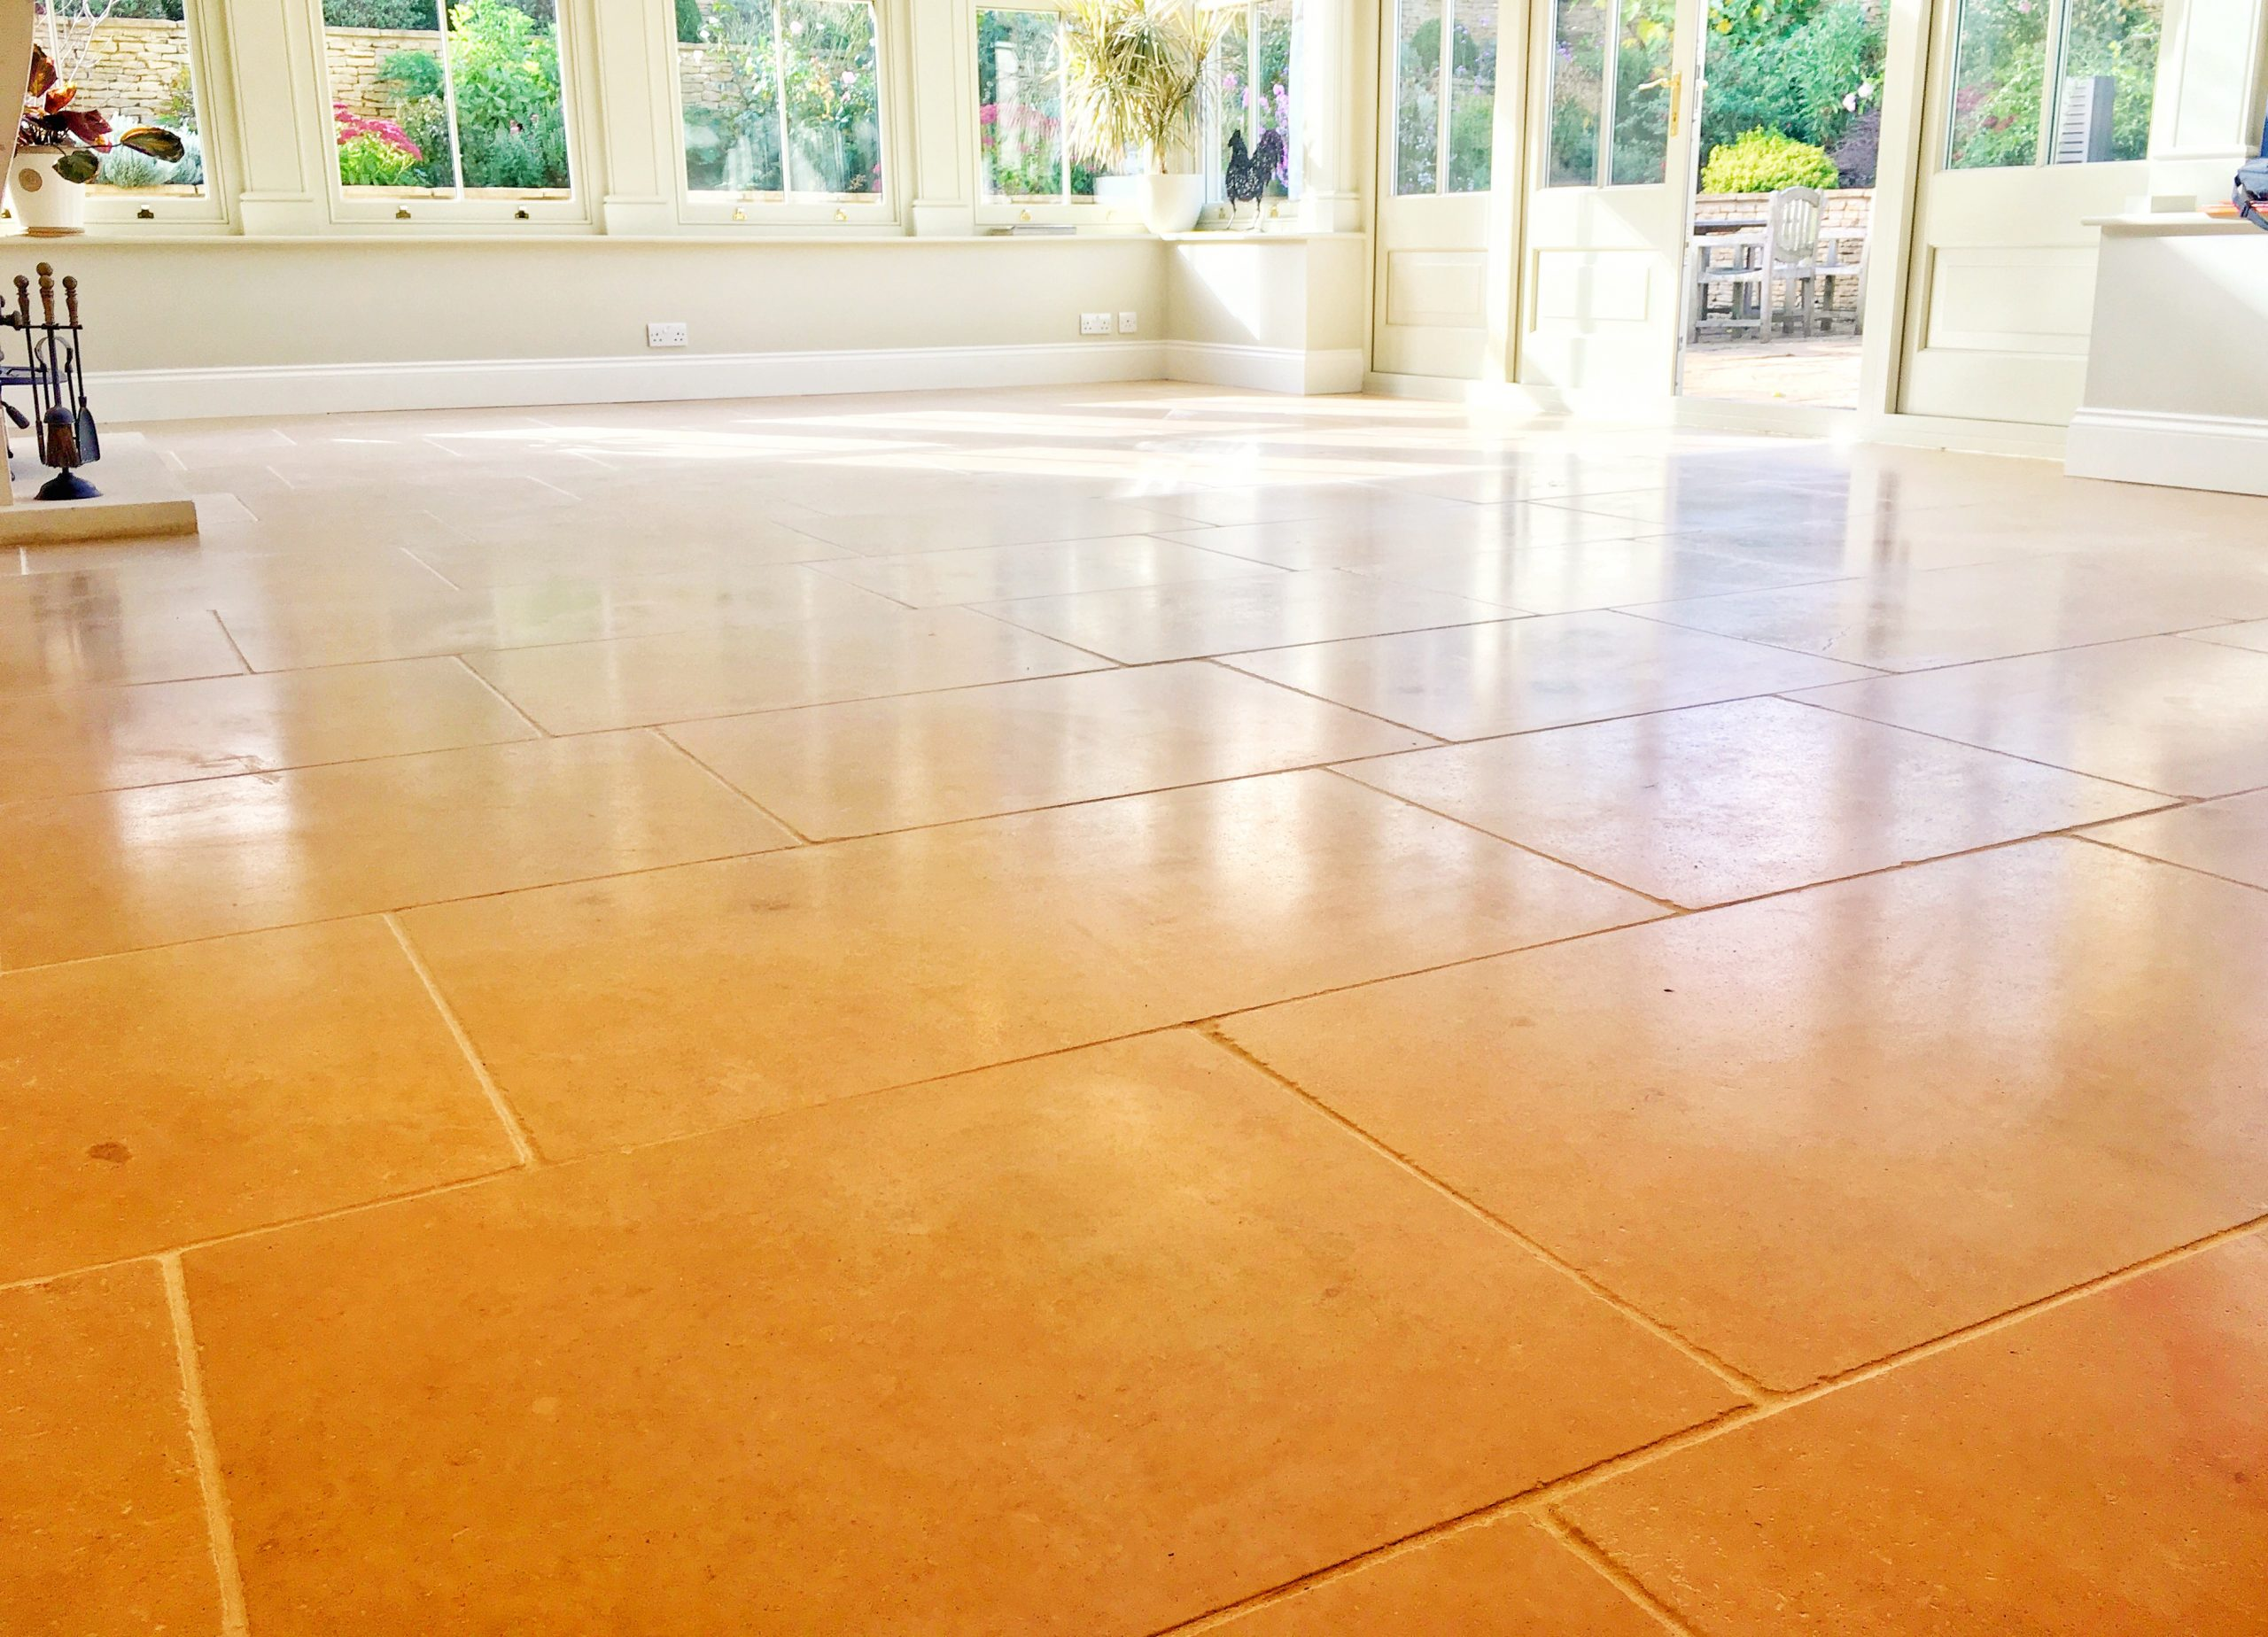 Sealing archives cotswold stone floor cleaners this french limestone has a similar look to cotswold stone while being a little harder making it more durable dailygadgetfo Images